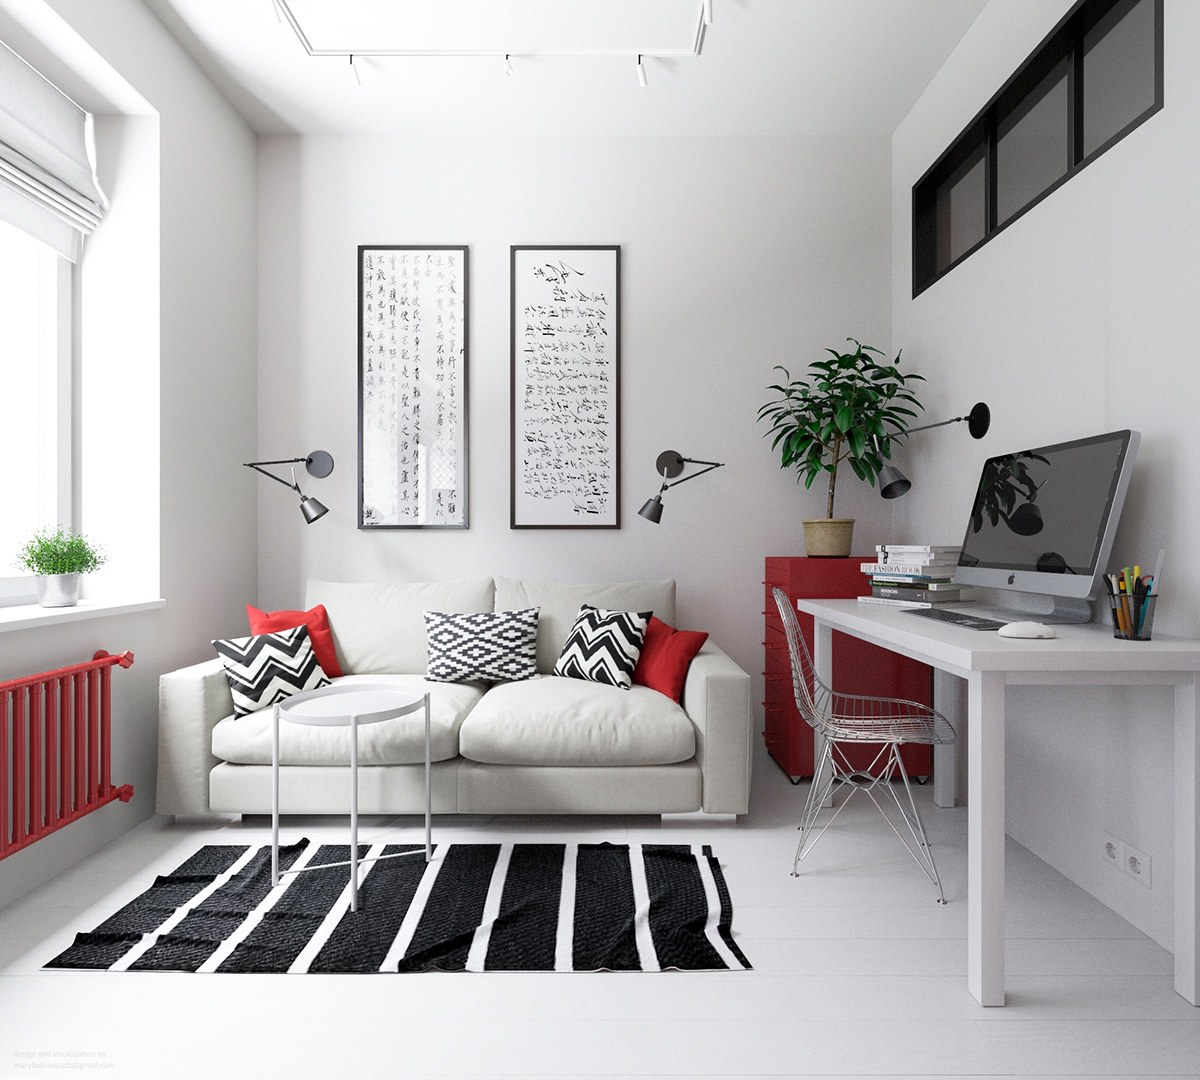 Color Theme Ideas For Small Apartments - 3 small apartments that rock uncommon color schemes with floor plans